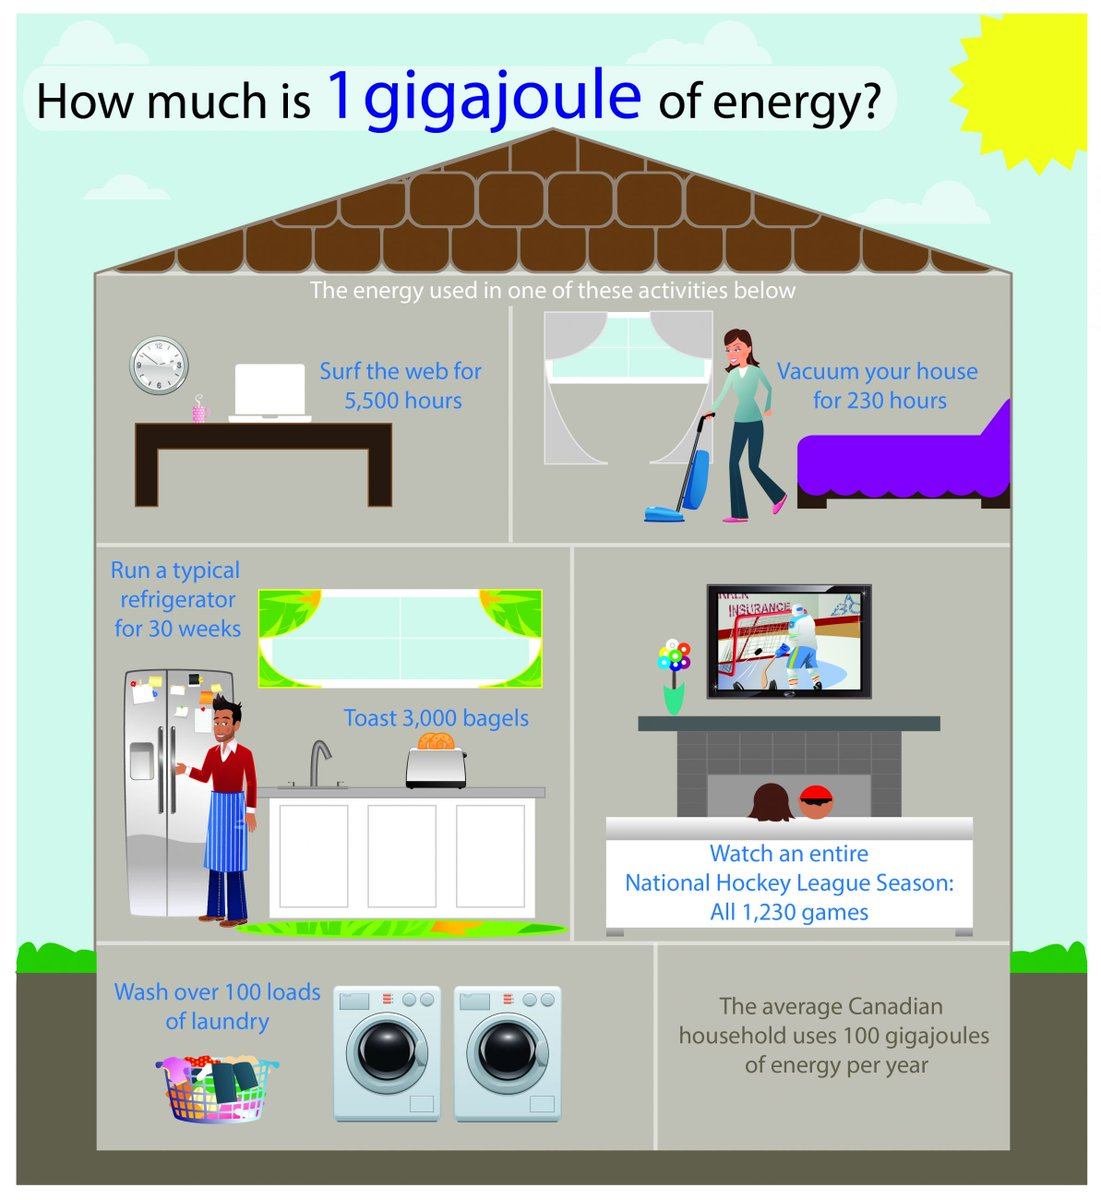 NB Power On Twitter An Average Canadian House Uses 100 Gigajoules Of Energy Every Year See How Much That Is With This Infographic From NRCan